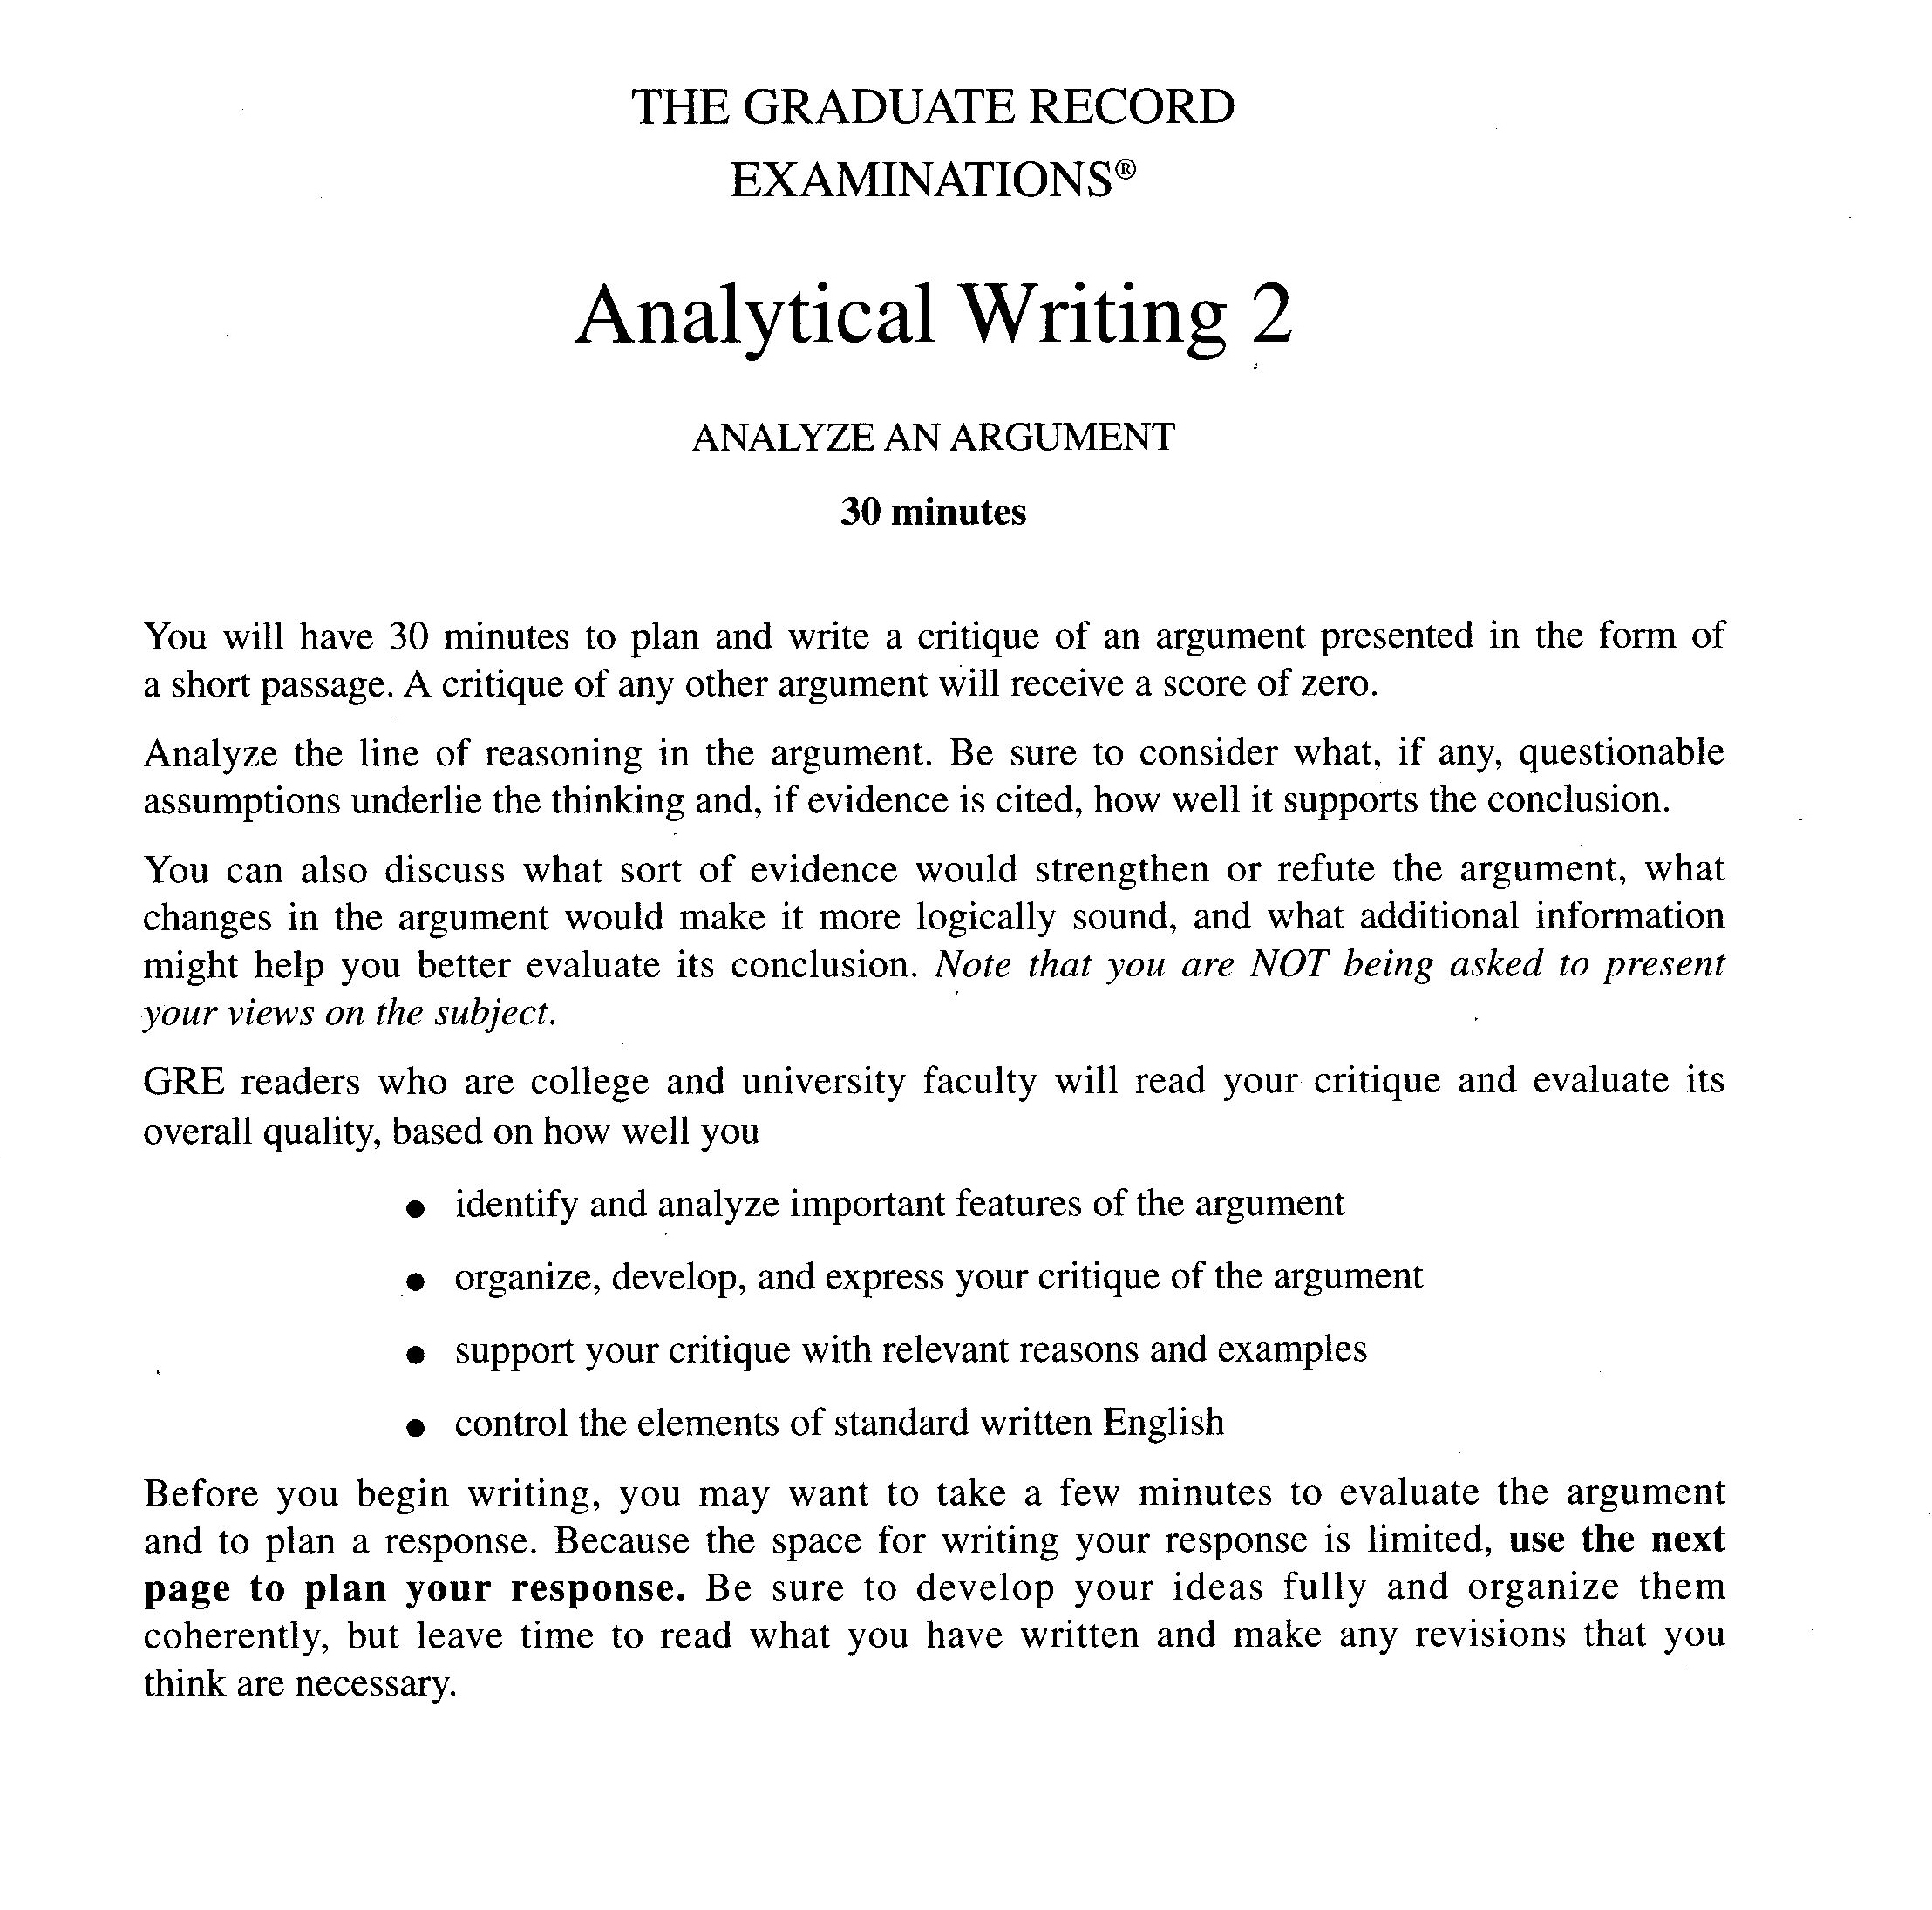 006 Analytical Writing Response Task Directions For Gre Samples Essay Example Sample Unique Essays Topics Practice Argument Prompts Full